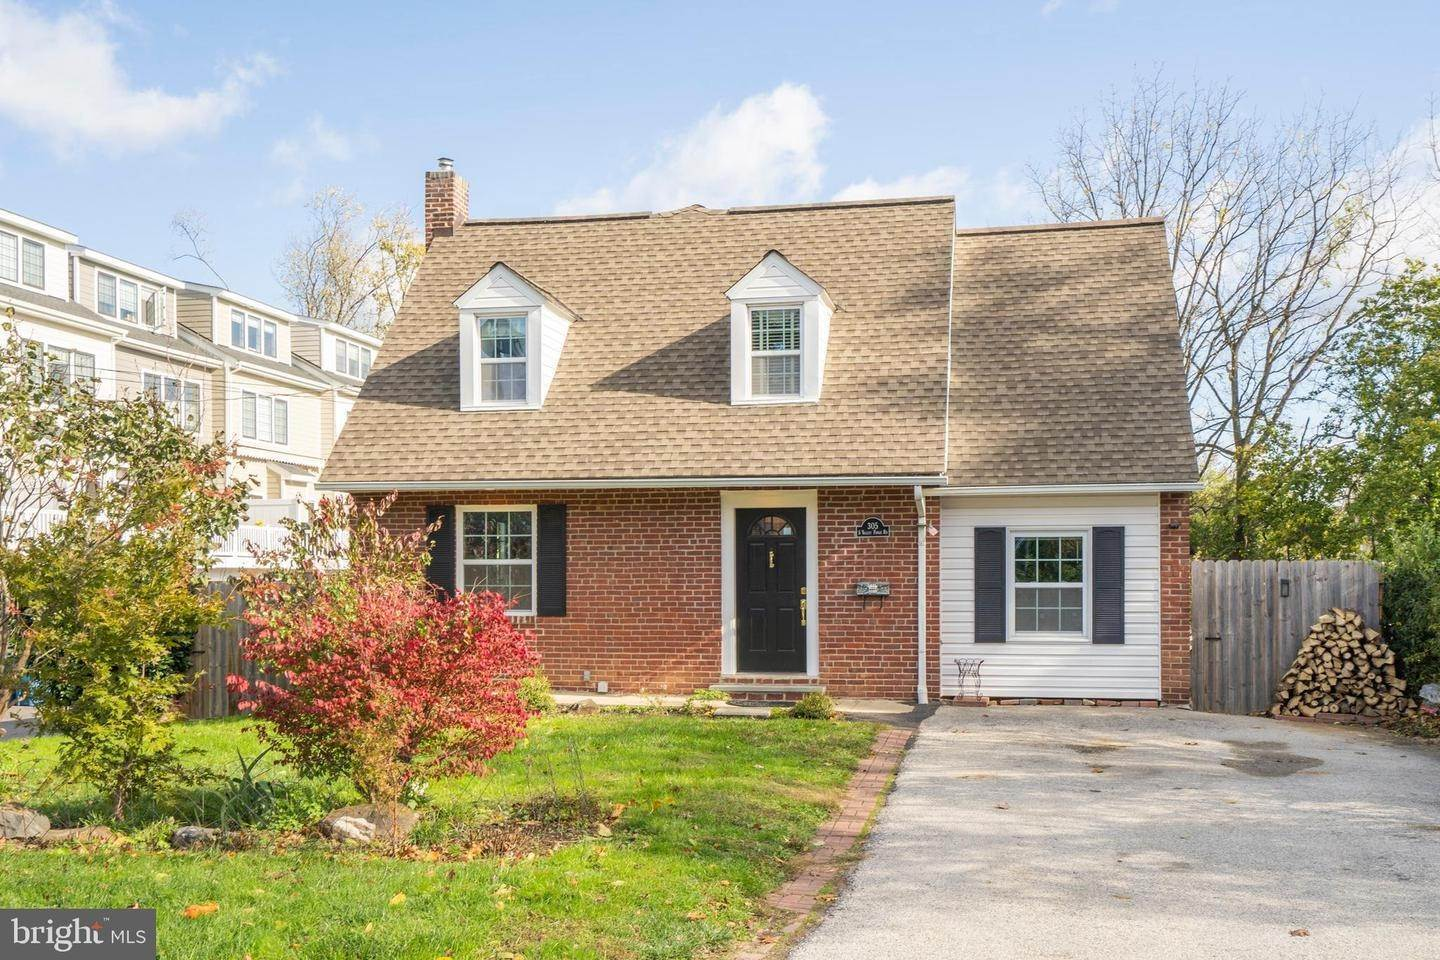 Detached House for Sale at 305 S VALLEY FORGE Road Devon, Pennsylvania 19333 United States